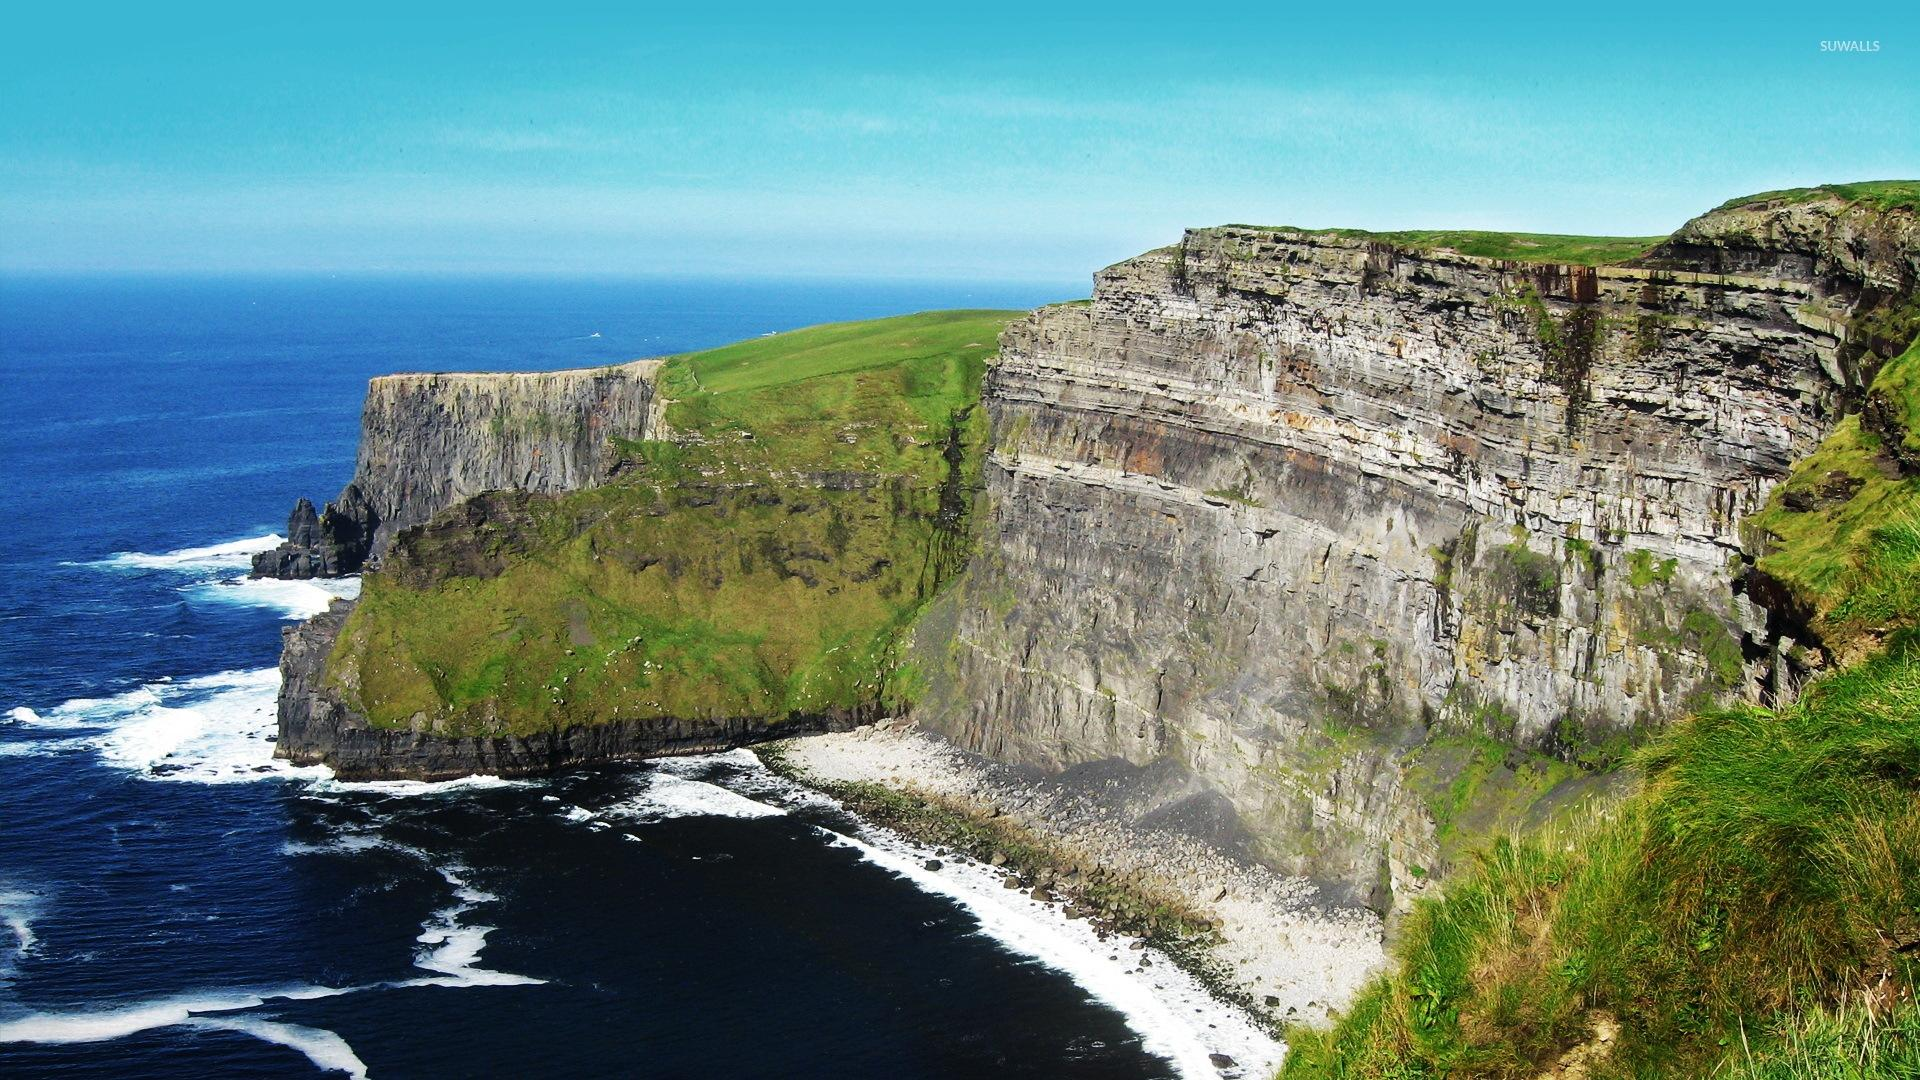 Cliffs of Moher wallpaper - Nature wallpapers - #3377